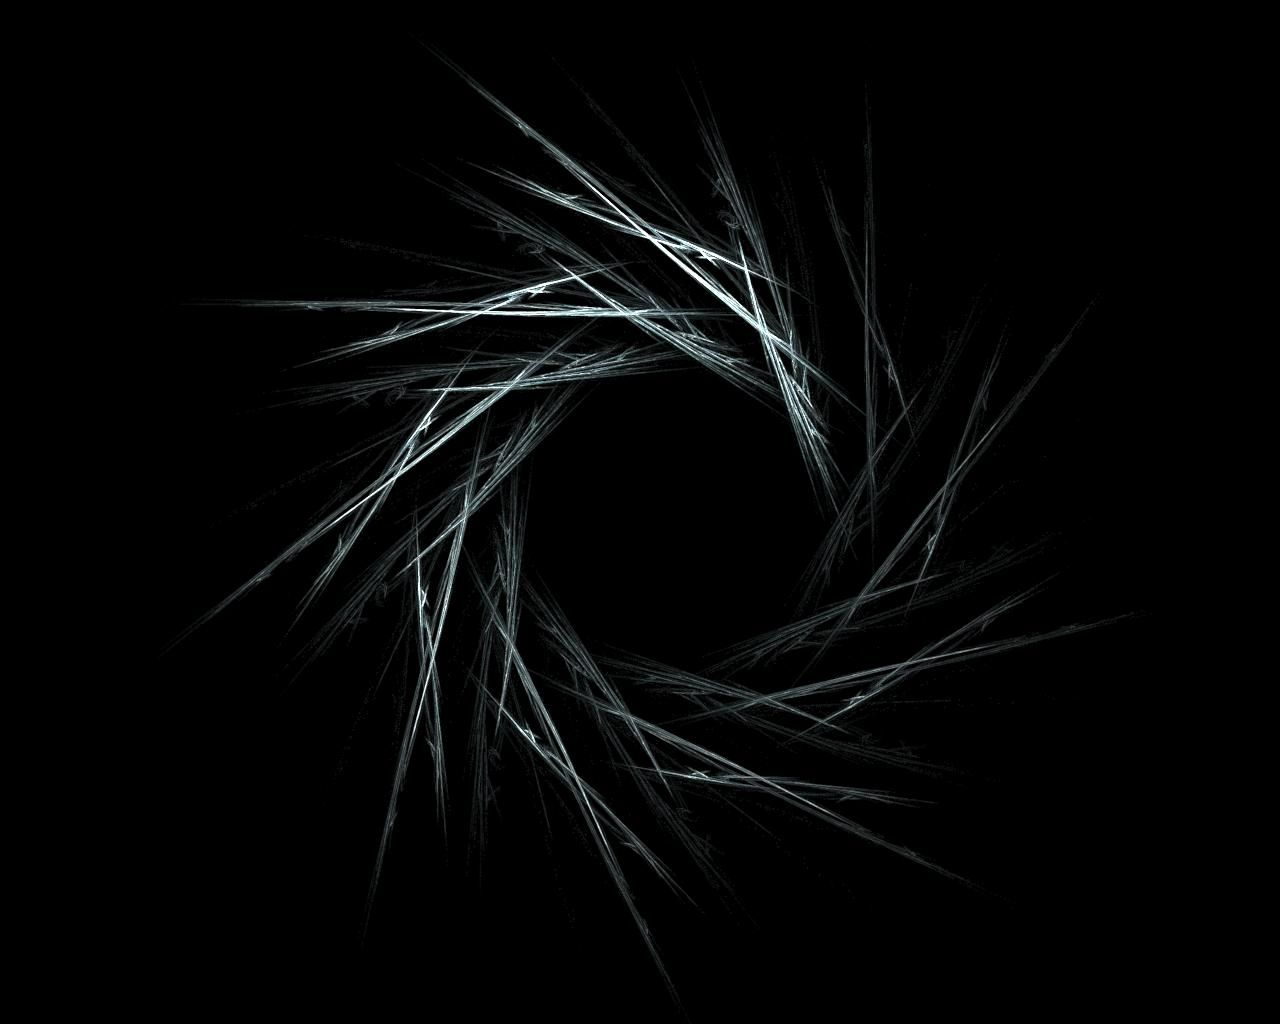 Black And White Abstract Backgrounds Abstract Black And White Hd